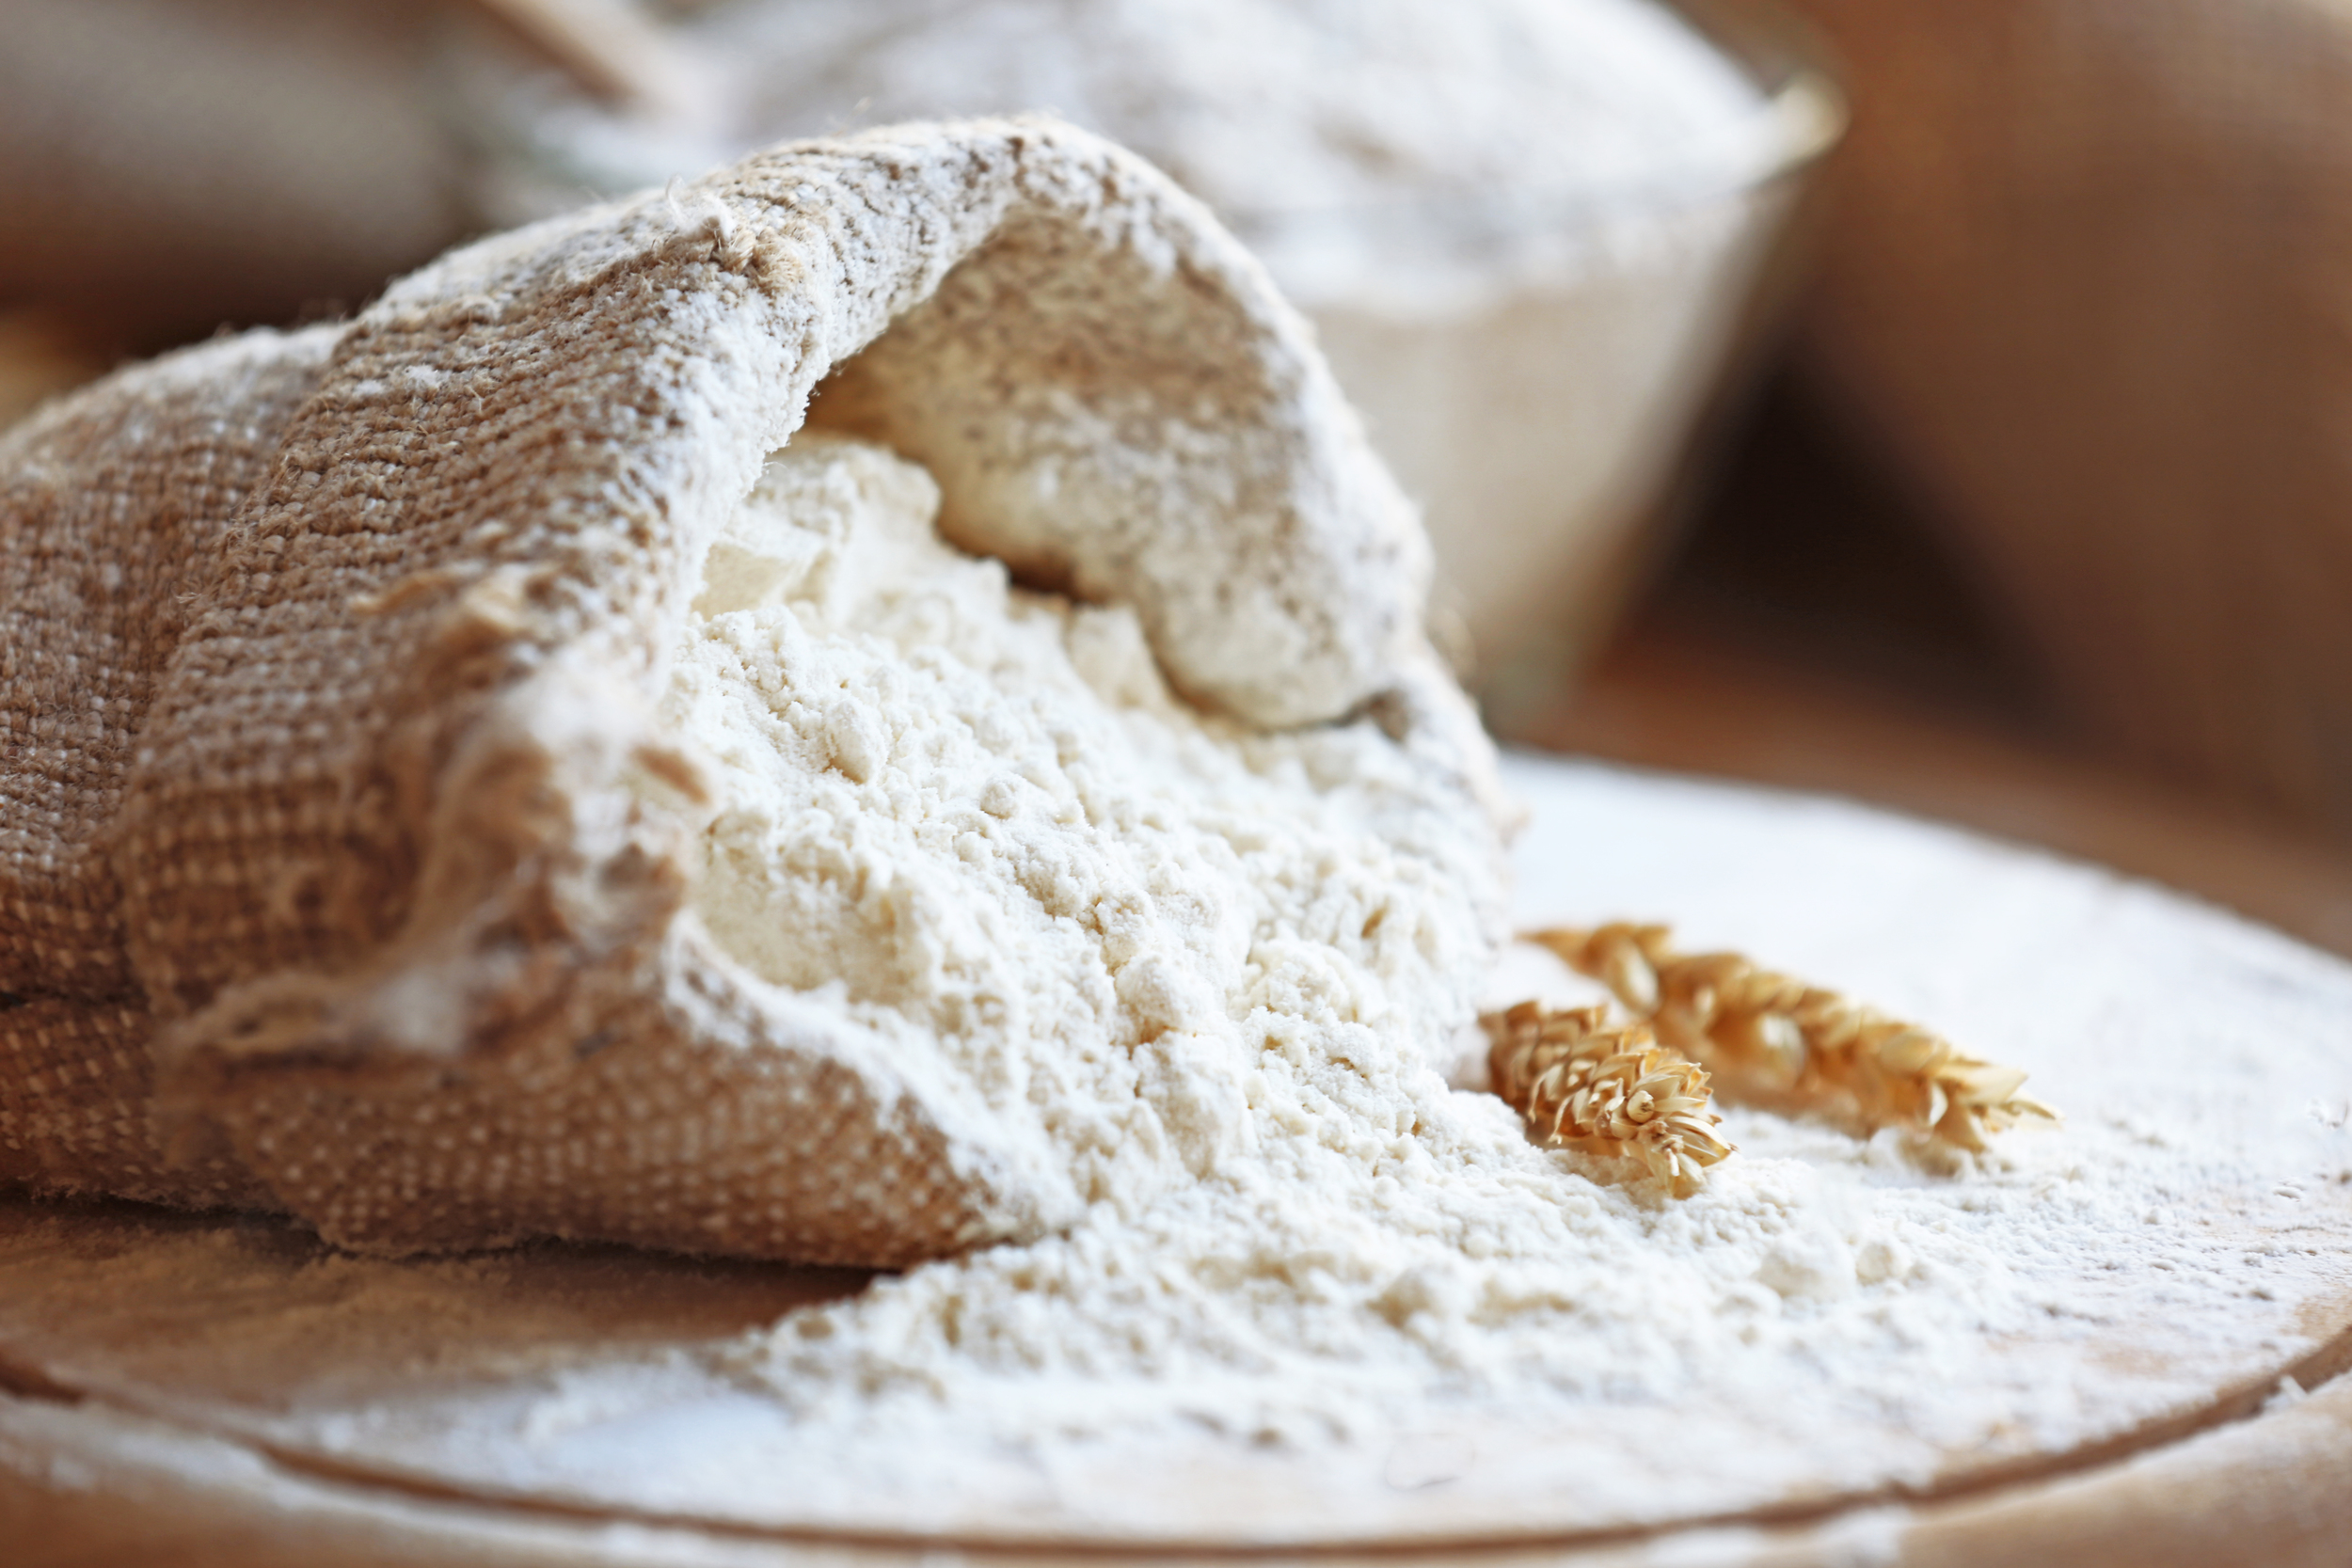 Flour, Grains, and Yeast